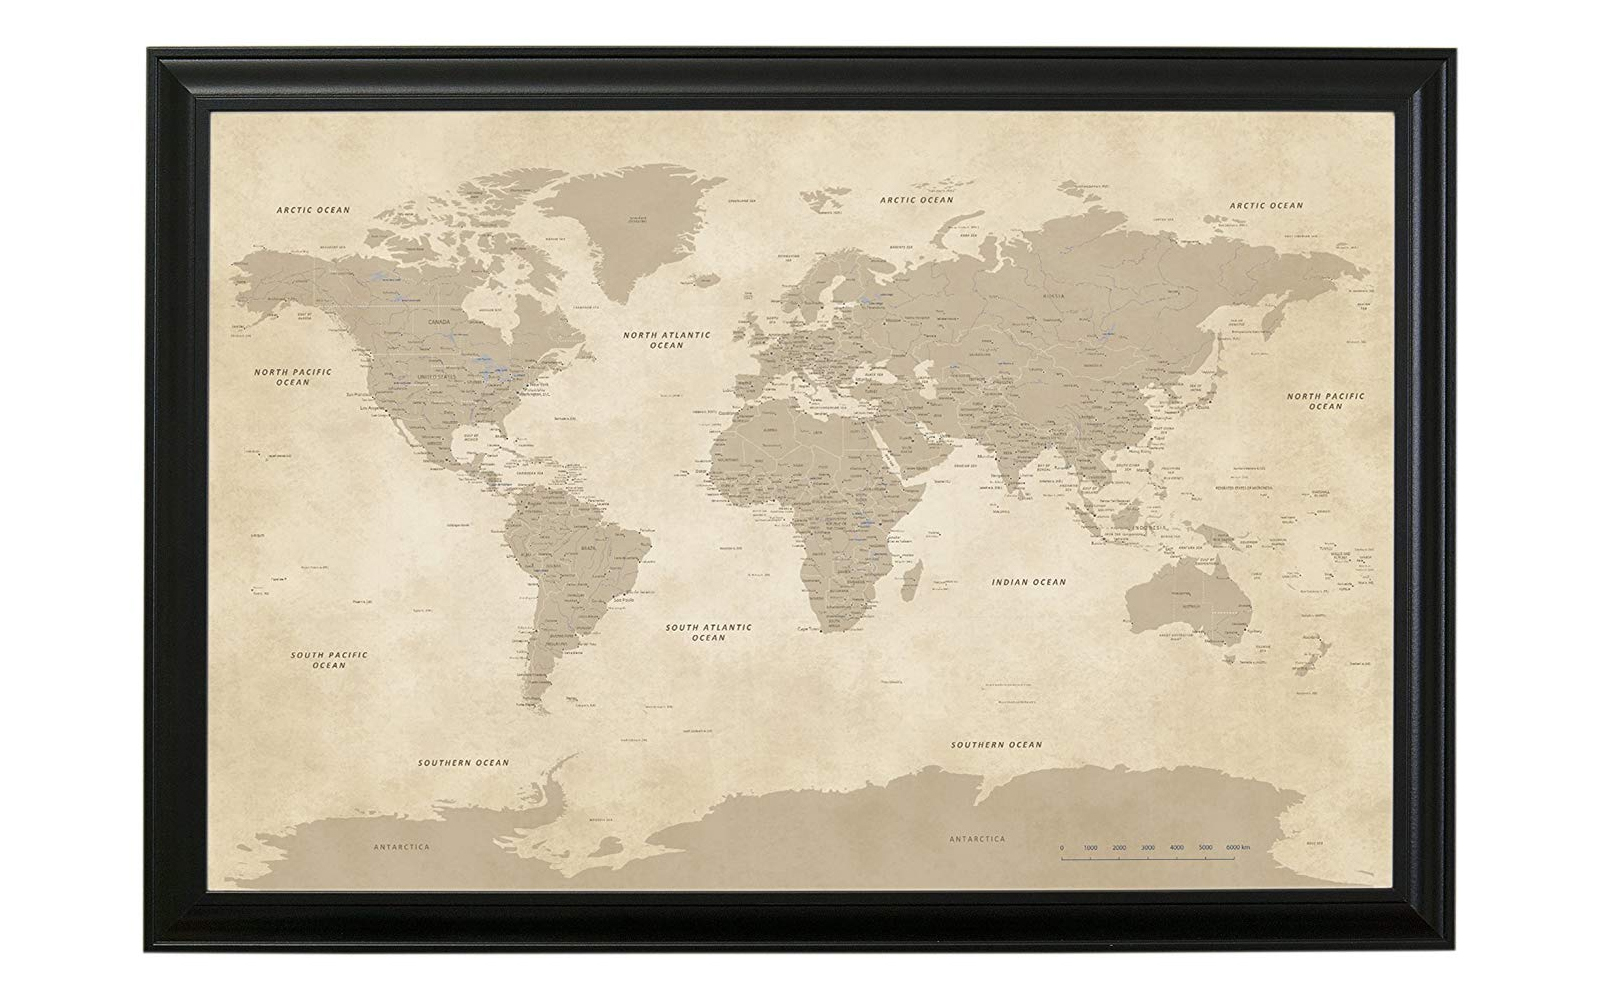 Push Pin Travel Maps Vintage World Map with Black Frame and Pins